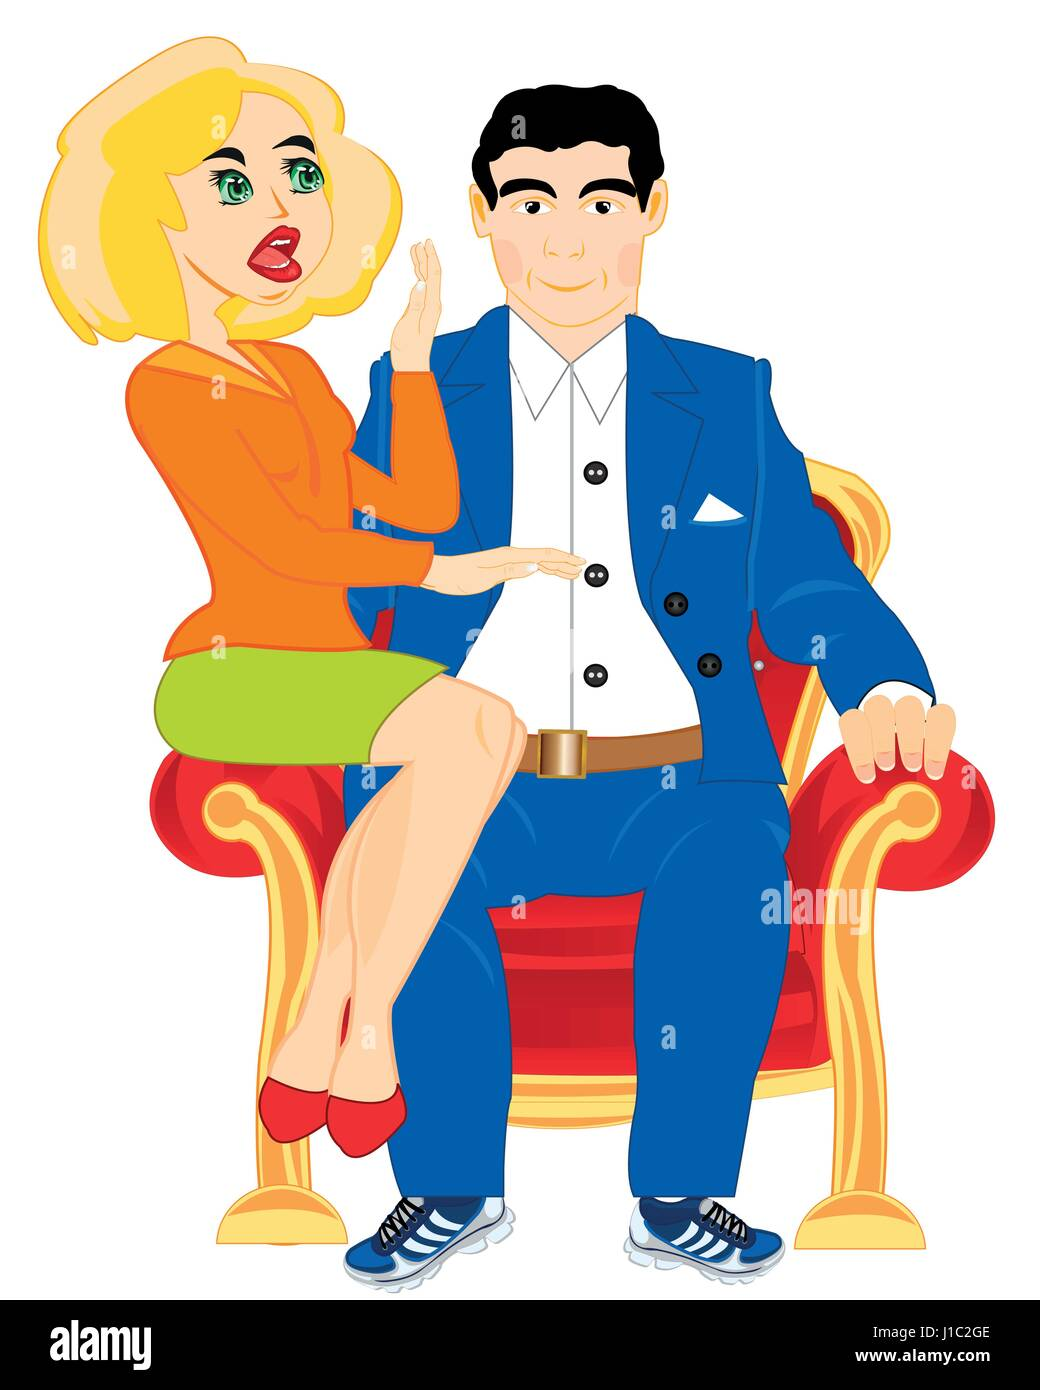 Girl and man on easy chair - Stock Vector